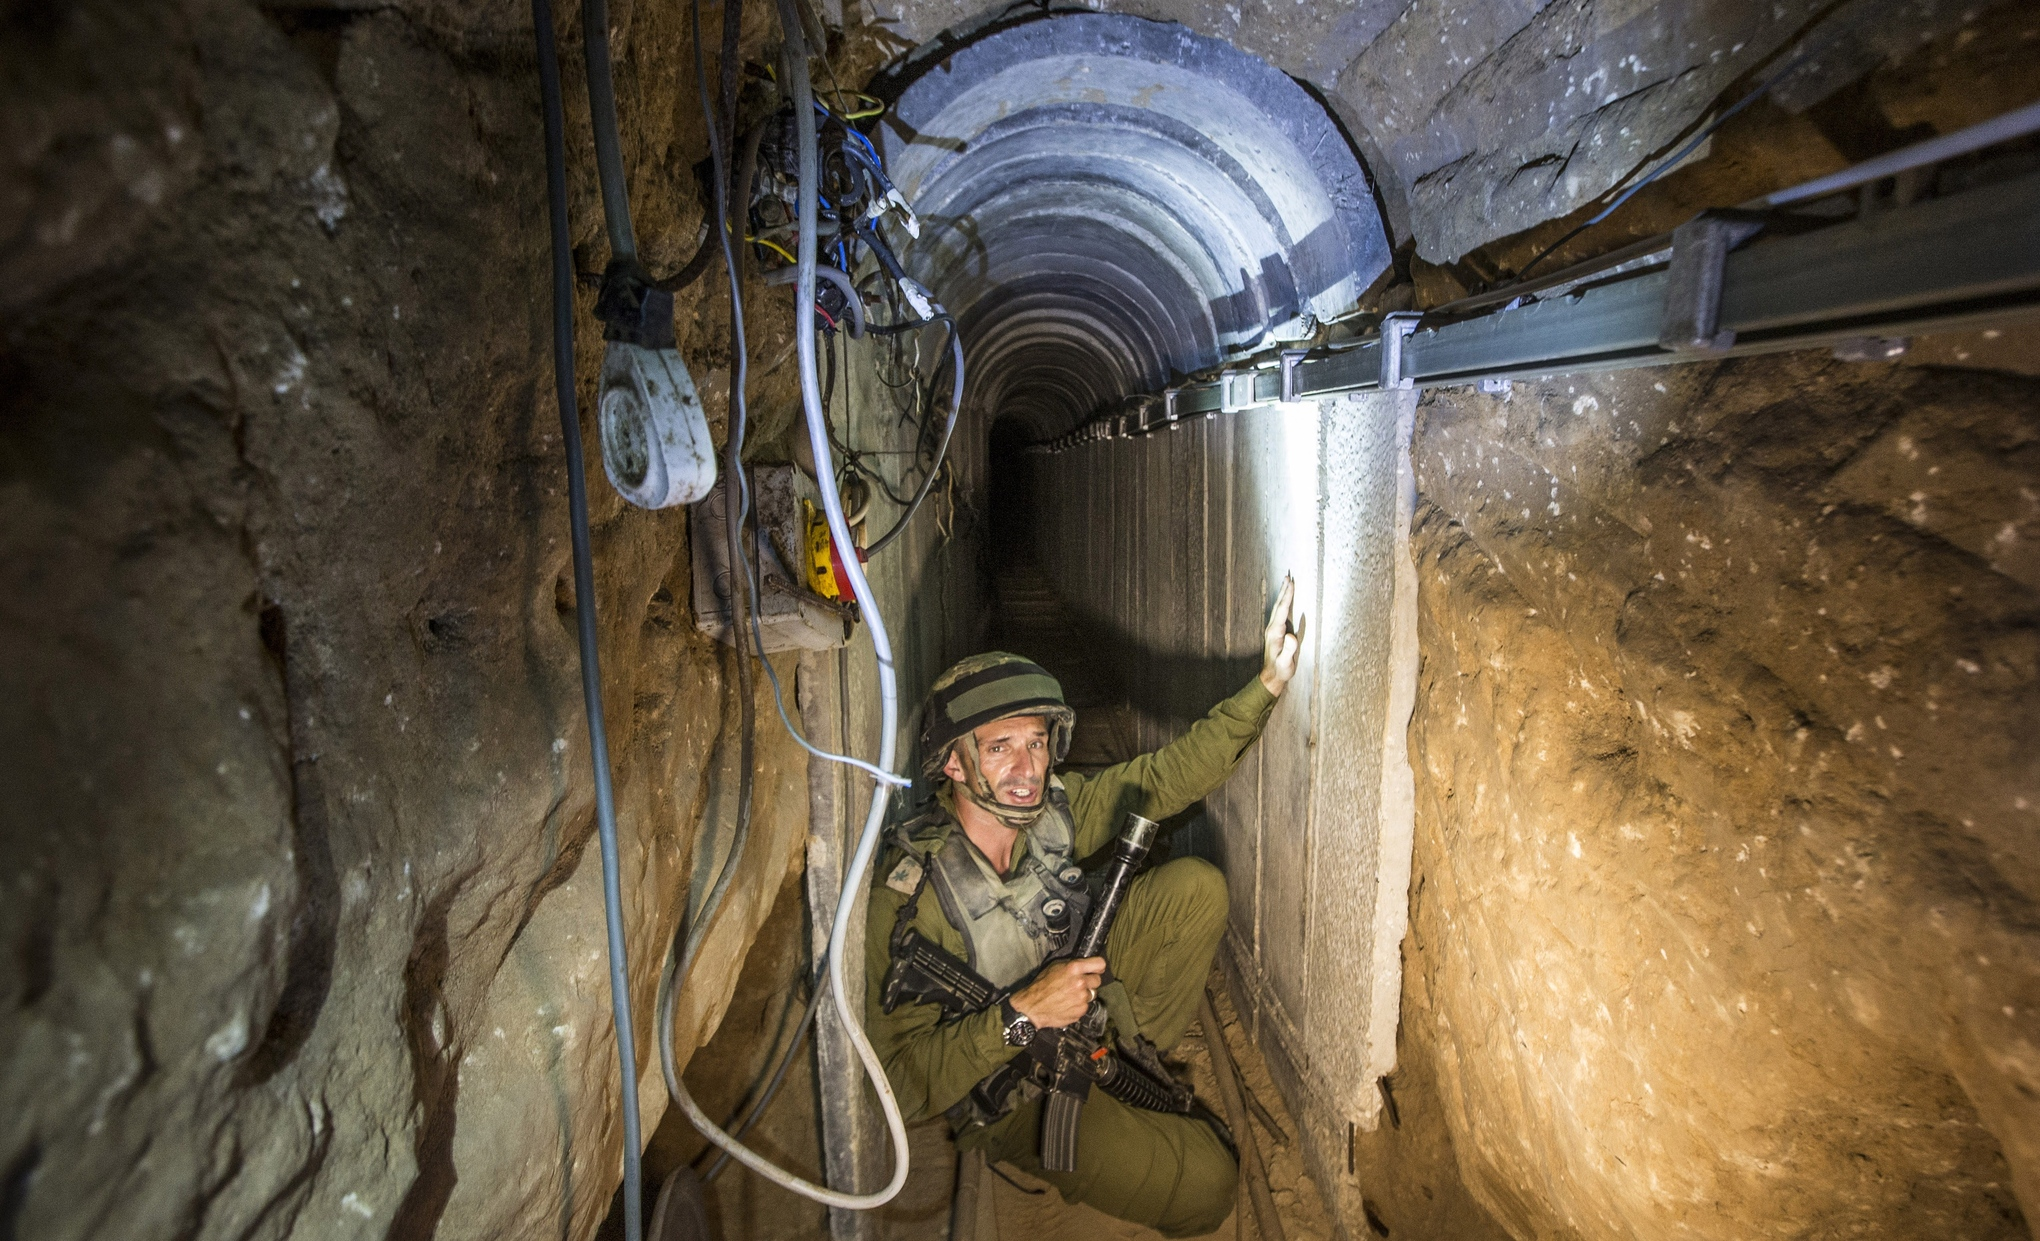 Israeli_soldier_hamas_tunnel